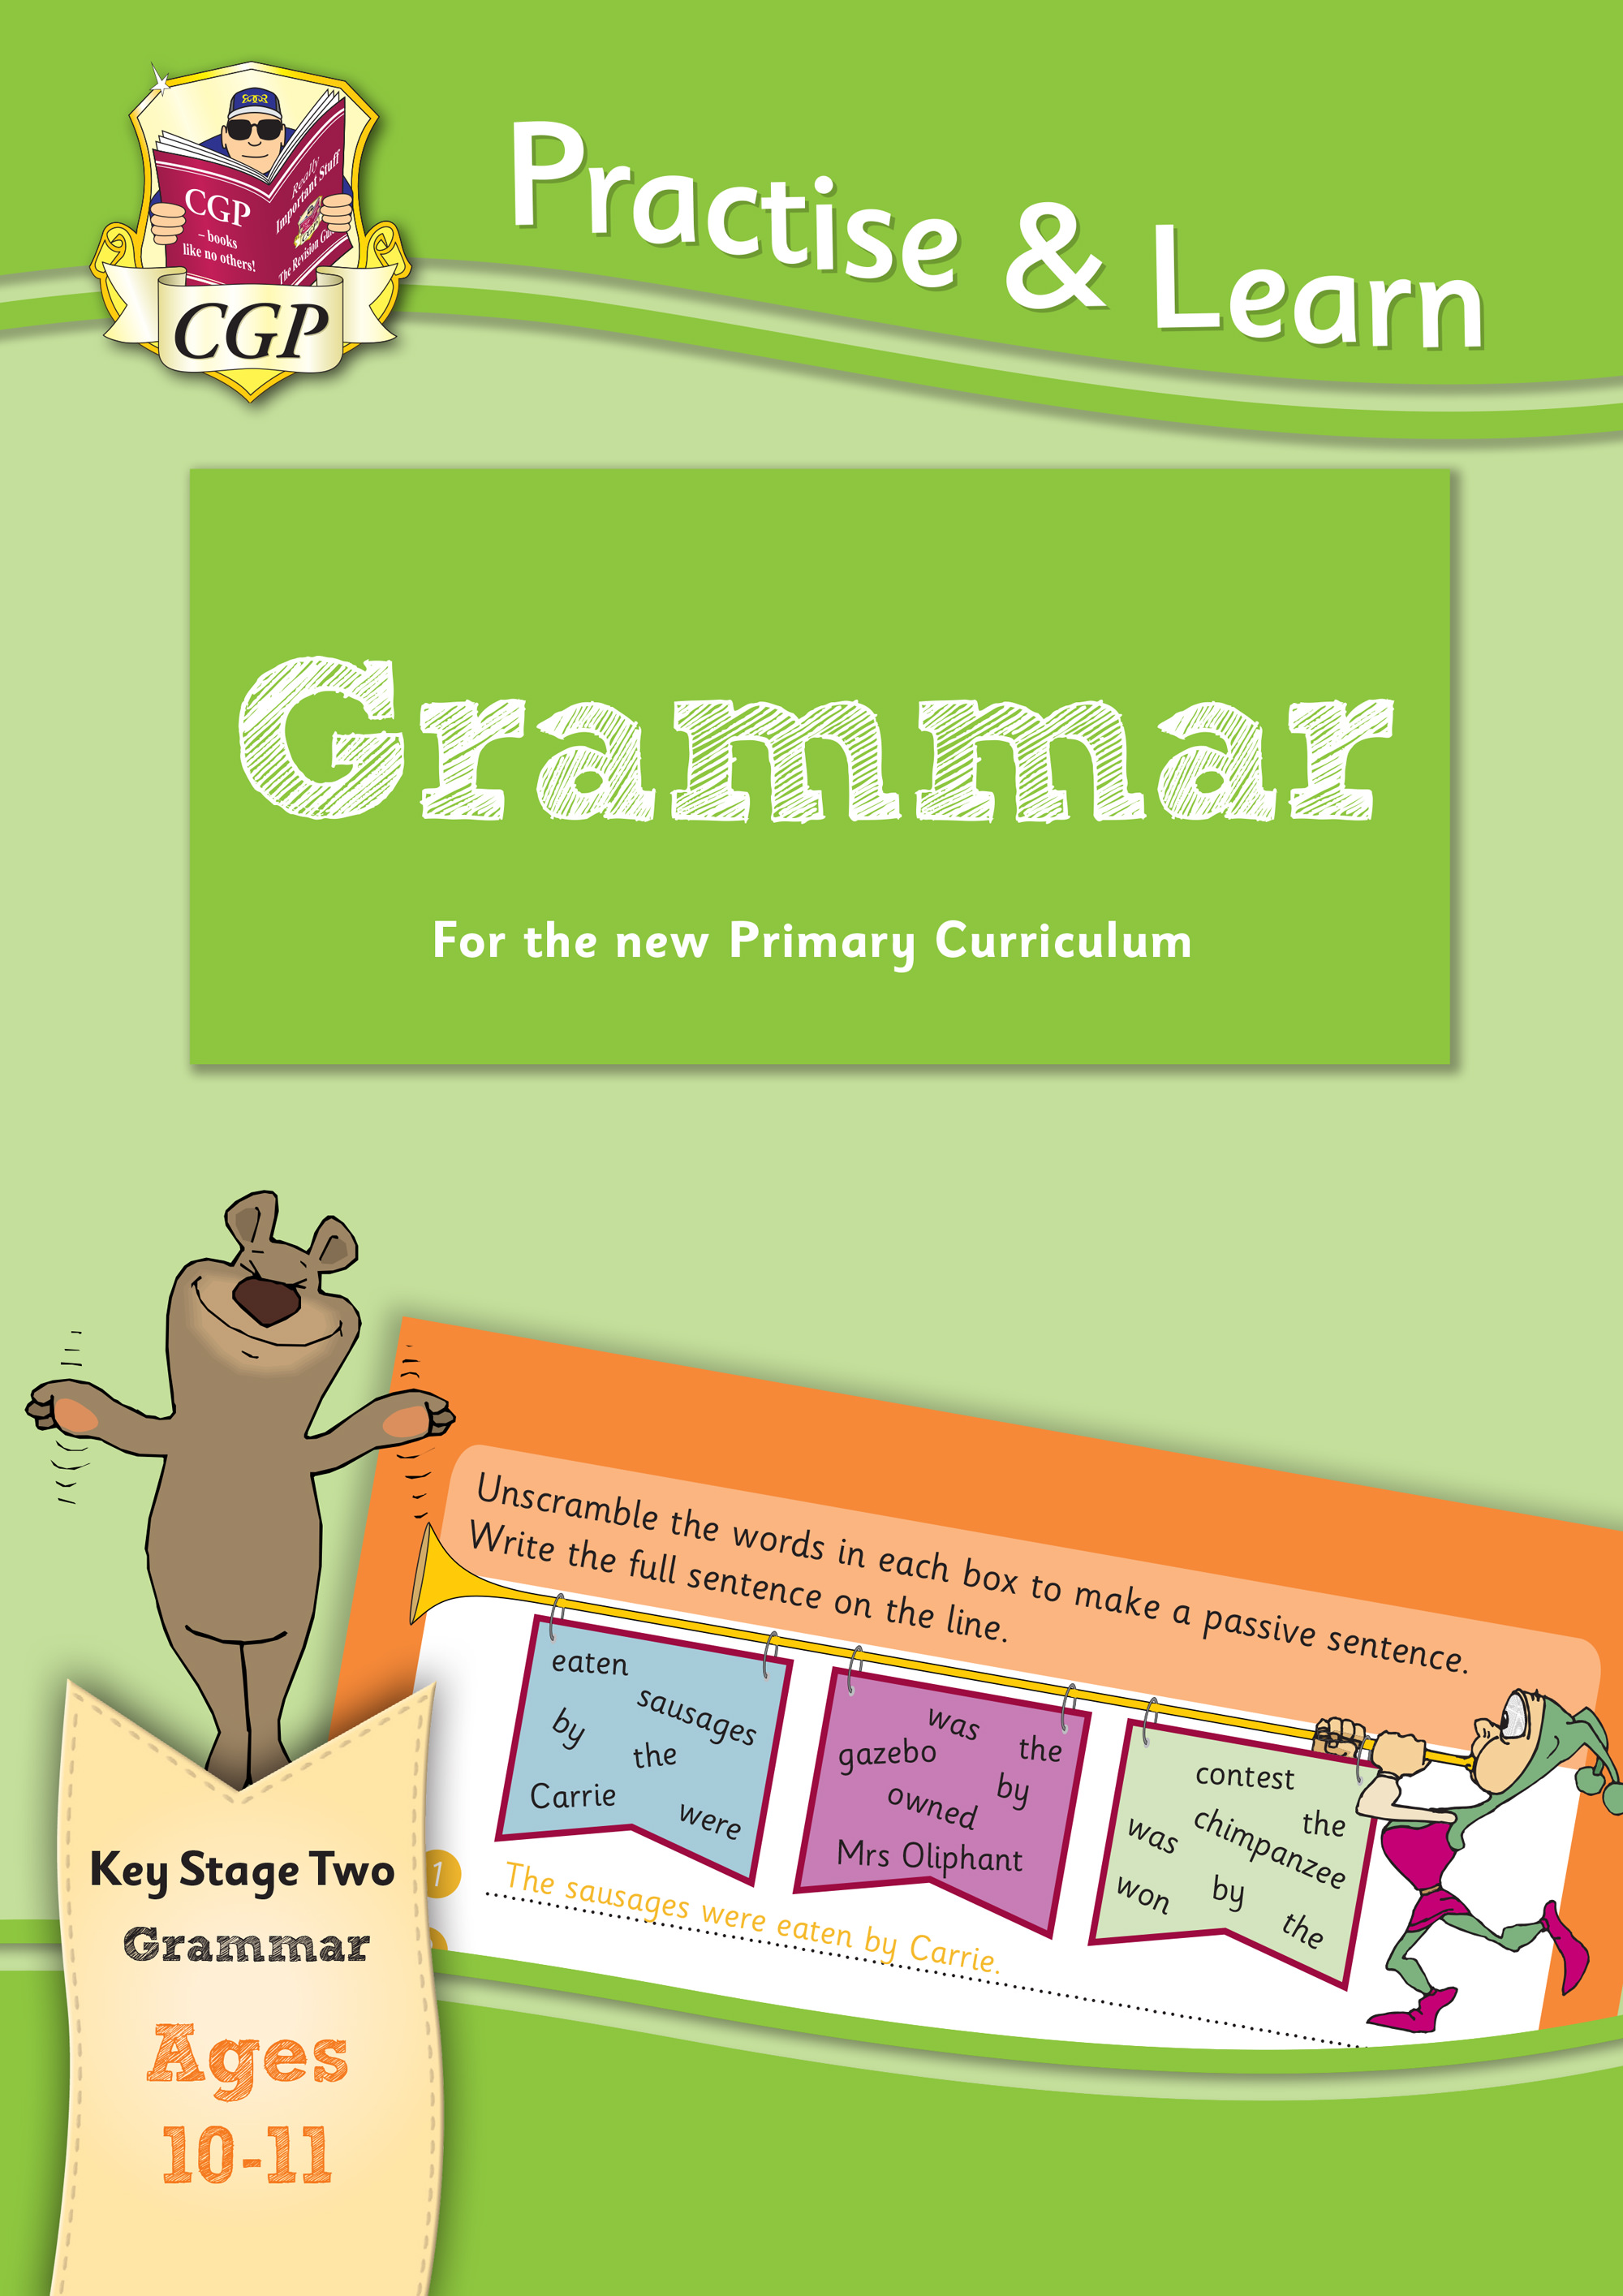 EP6G22 - New Curriculum Practise & Learn: Grammar for Ages 10-11